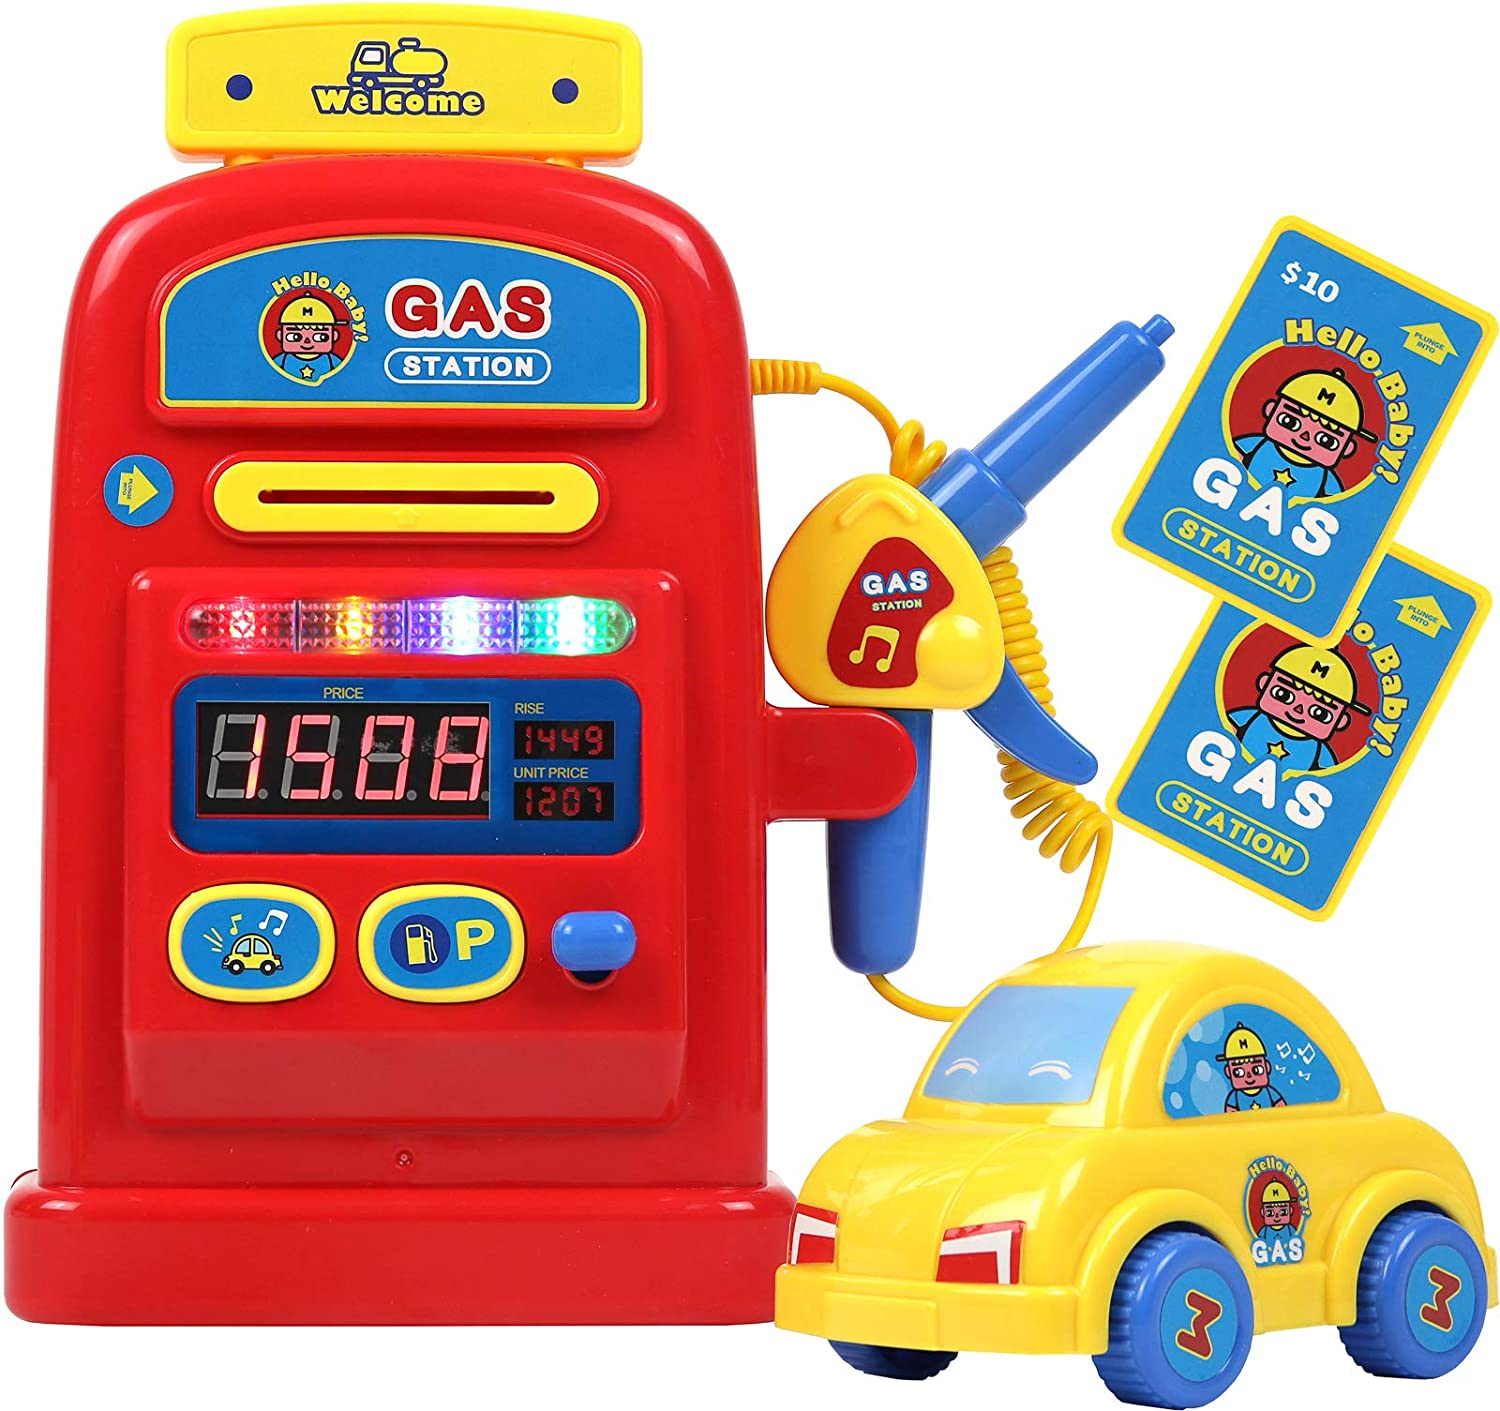 TeganPlay Gas Station Popular products online shopping Playset Pretend Pump Play Toy Boys for